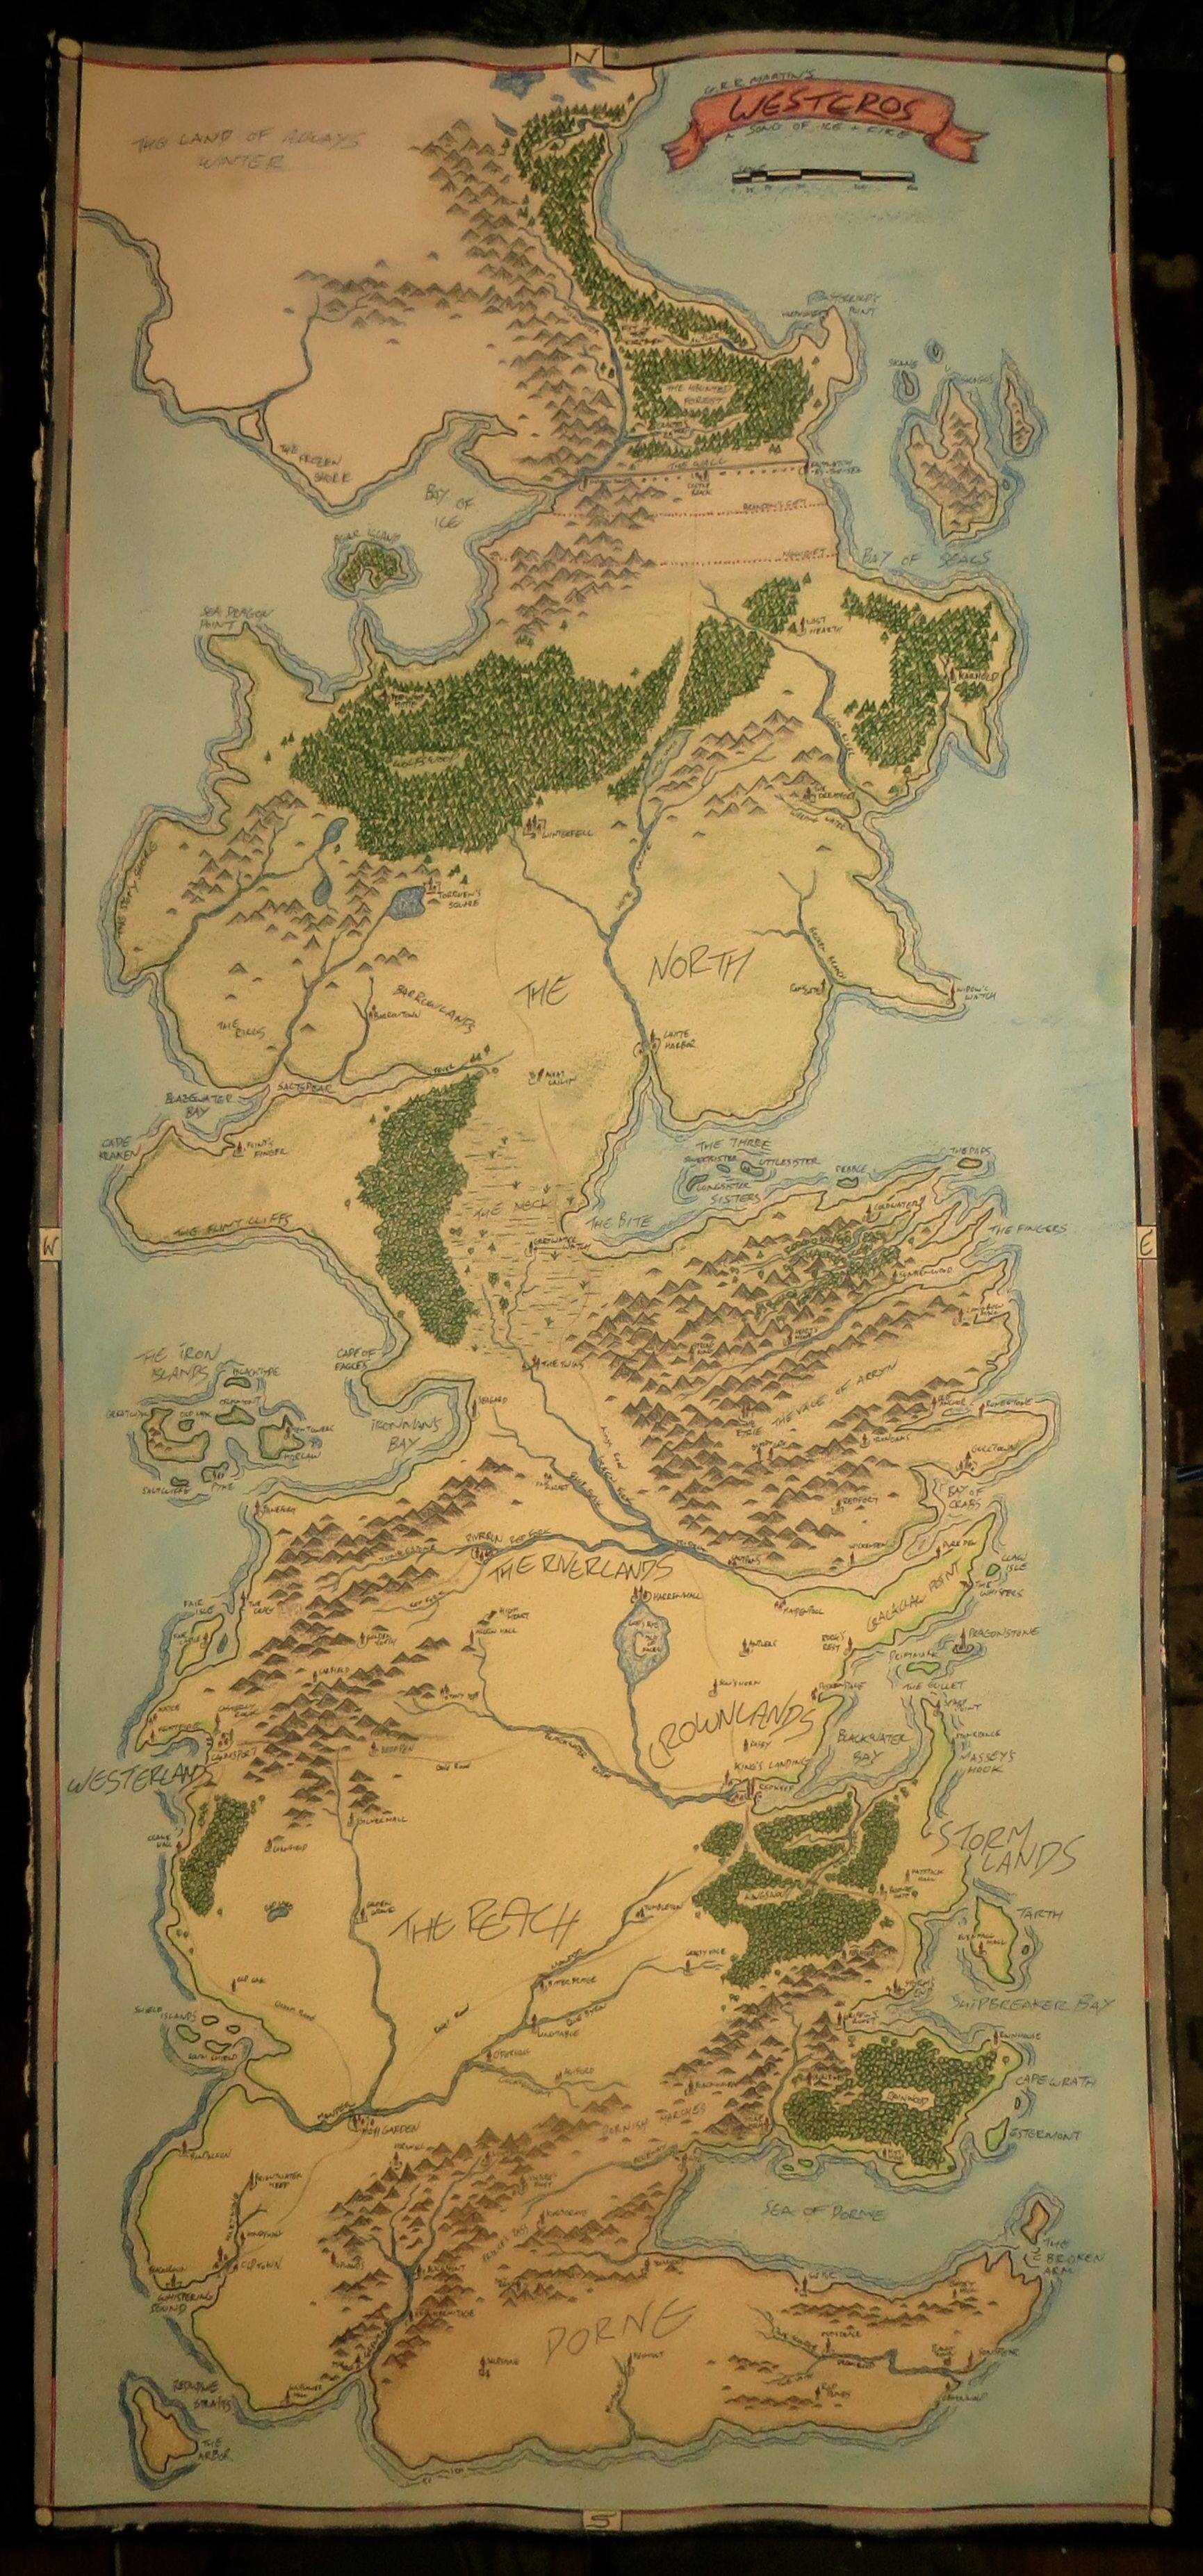 I drew a map of Westeros from Game of Thrones …